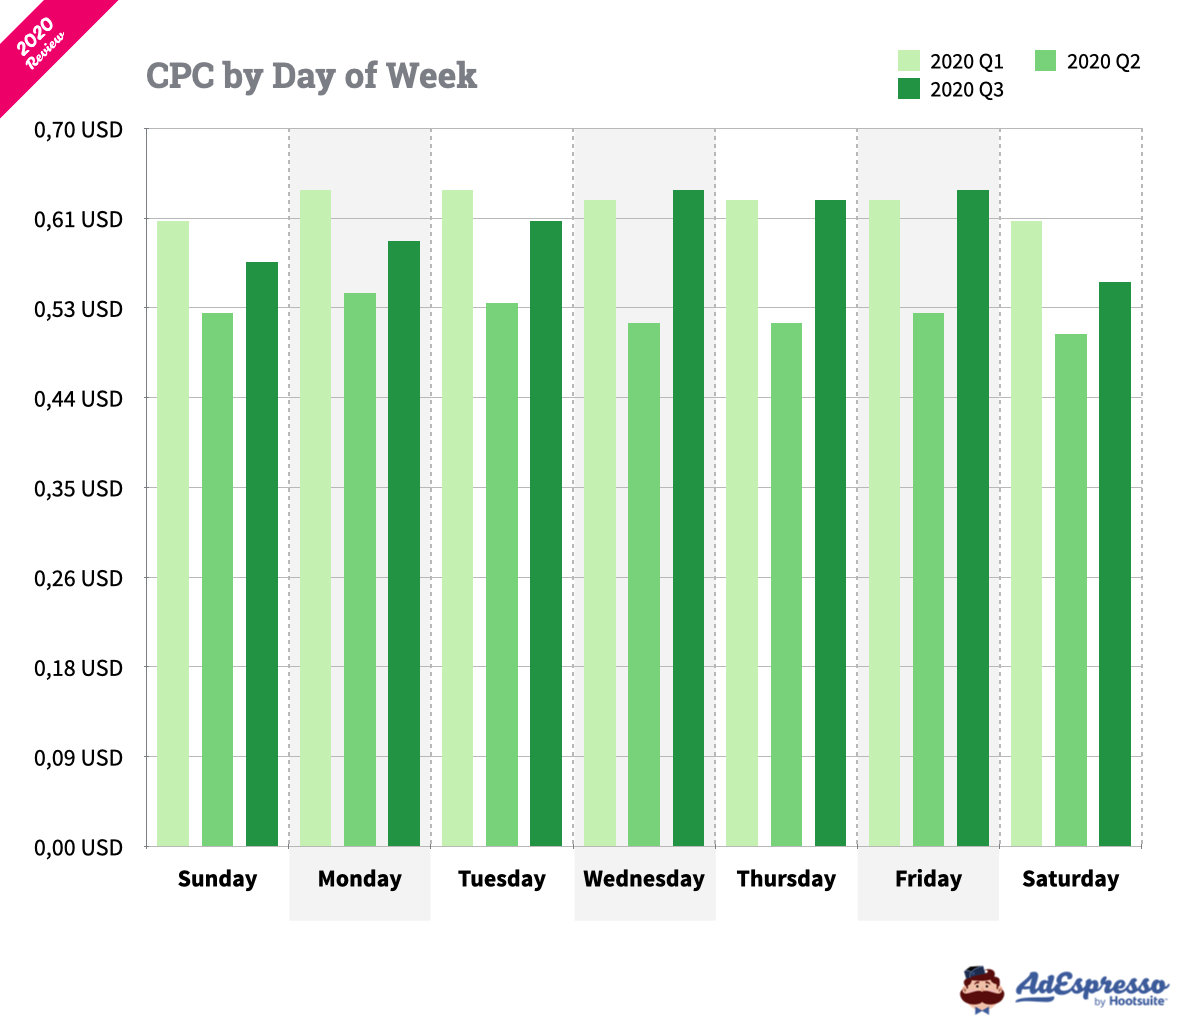 Average CPC on Facebook by day of the week